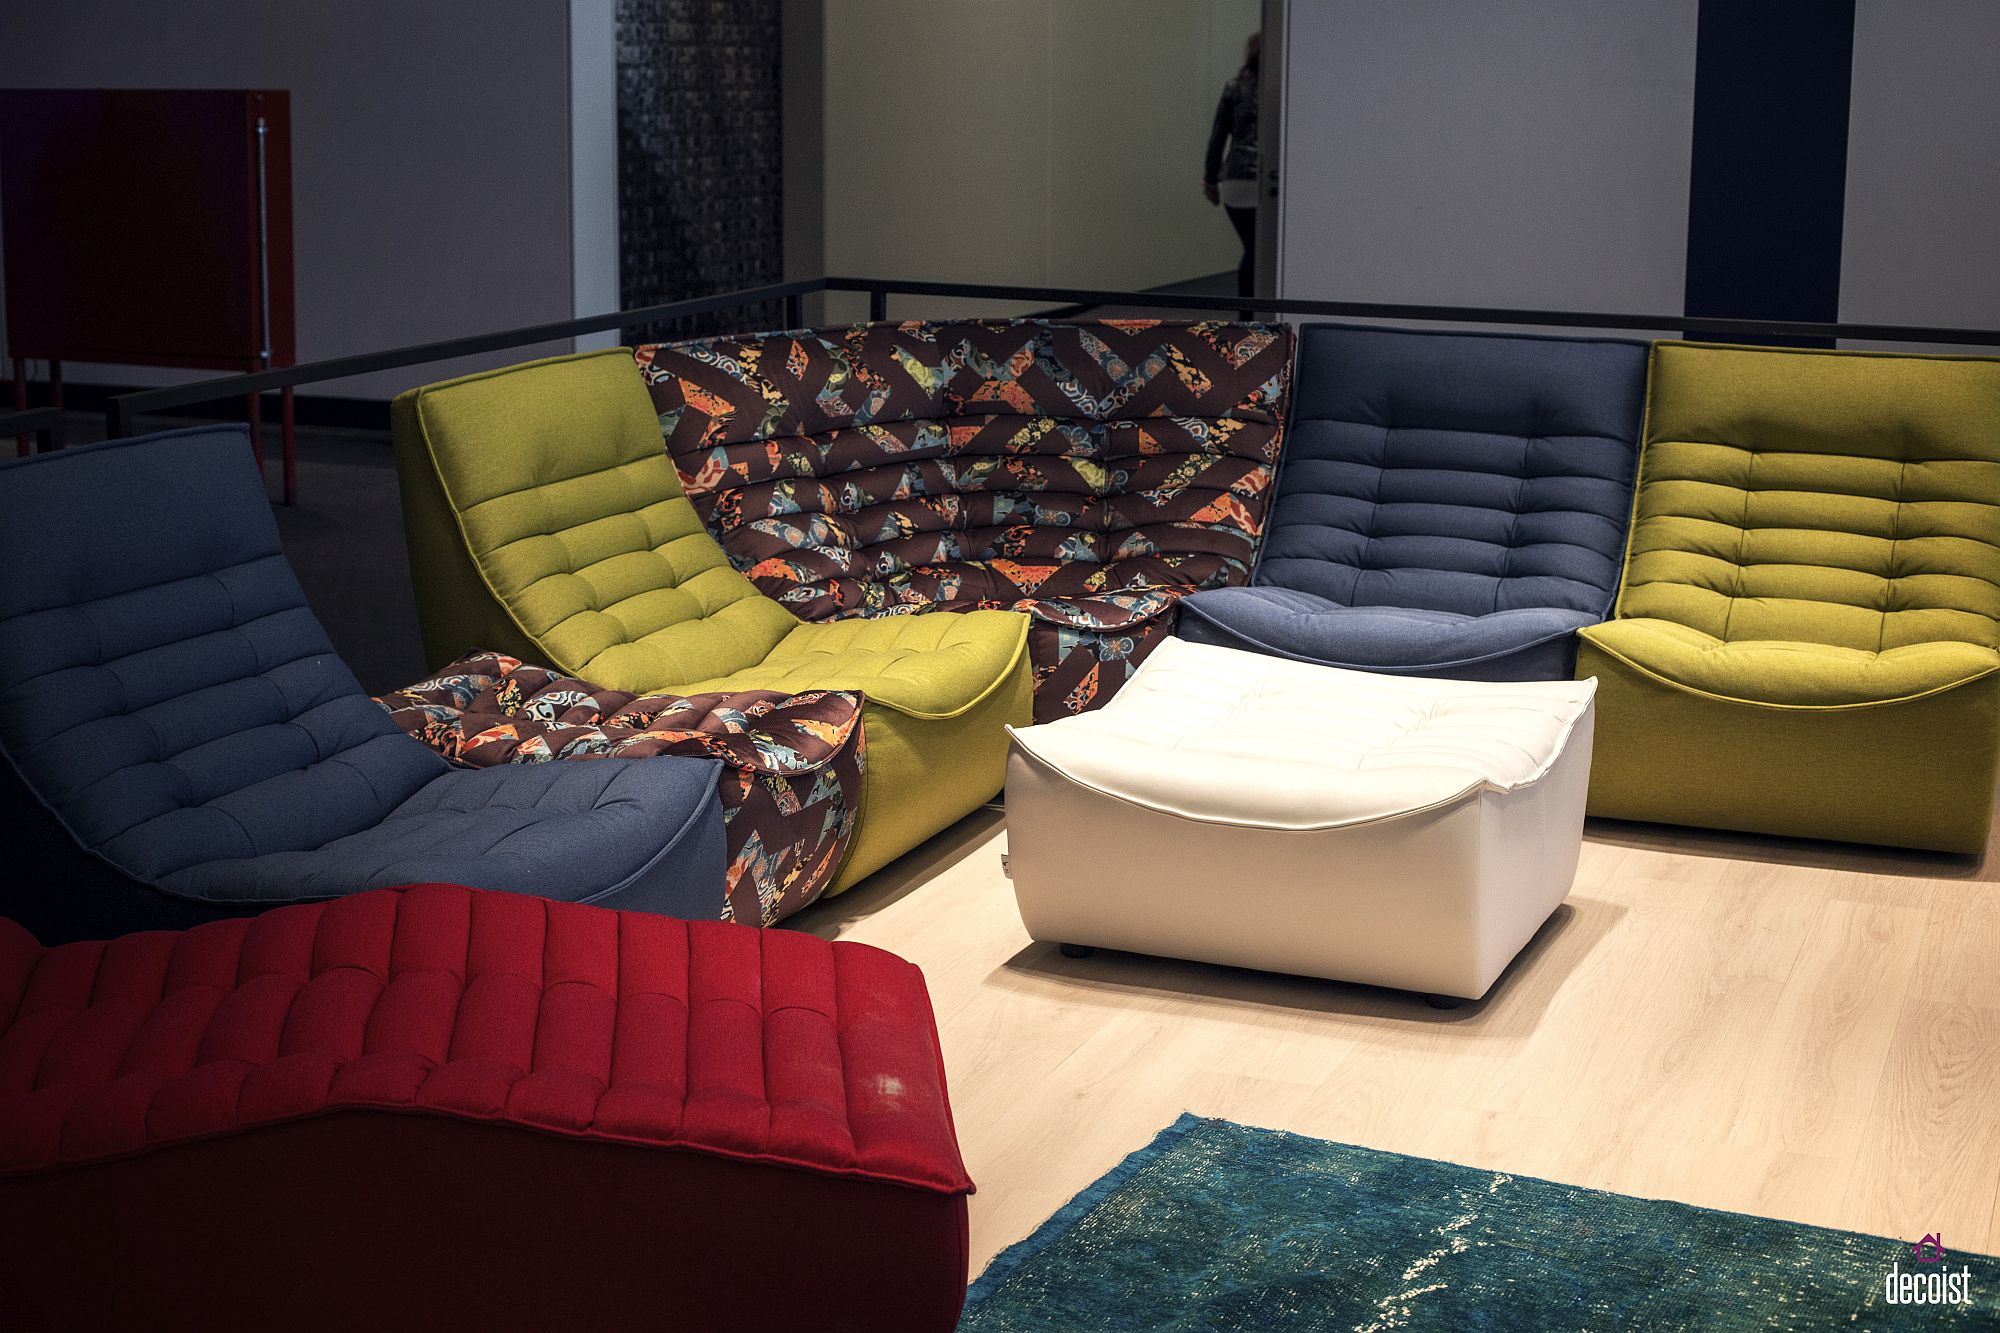 Adding-color-and-pattern-to-the-living-room-with-modular-sofa-units-from-Calia-Italia